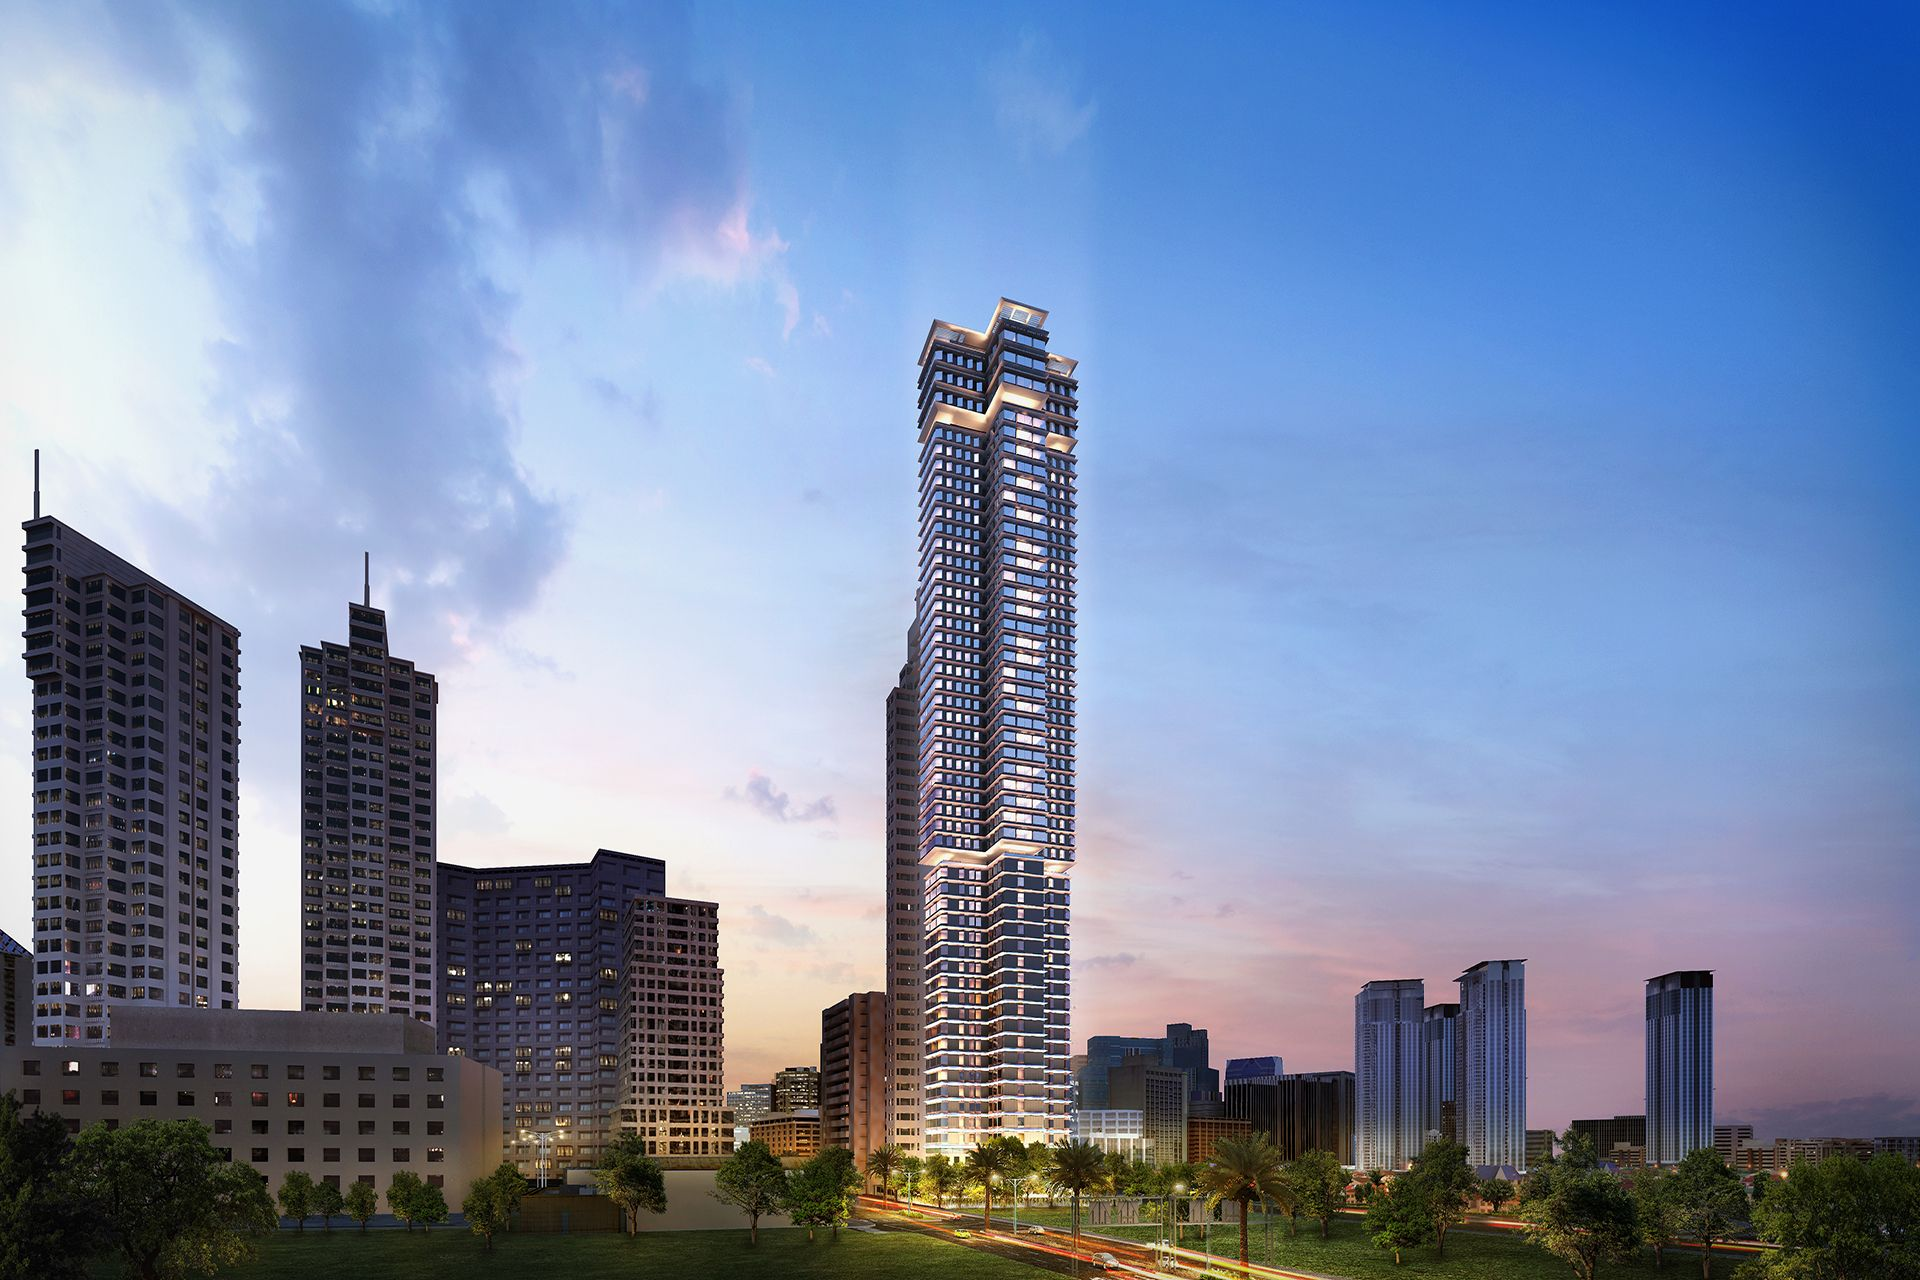 The Estate Makati: A Peek Inside The Newest Luxury Condo To Rise In Ayala Avenue